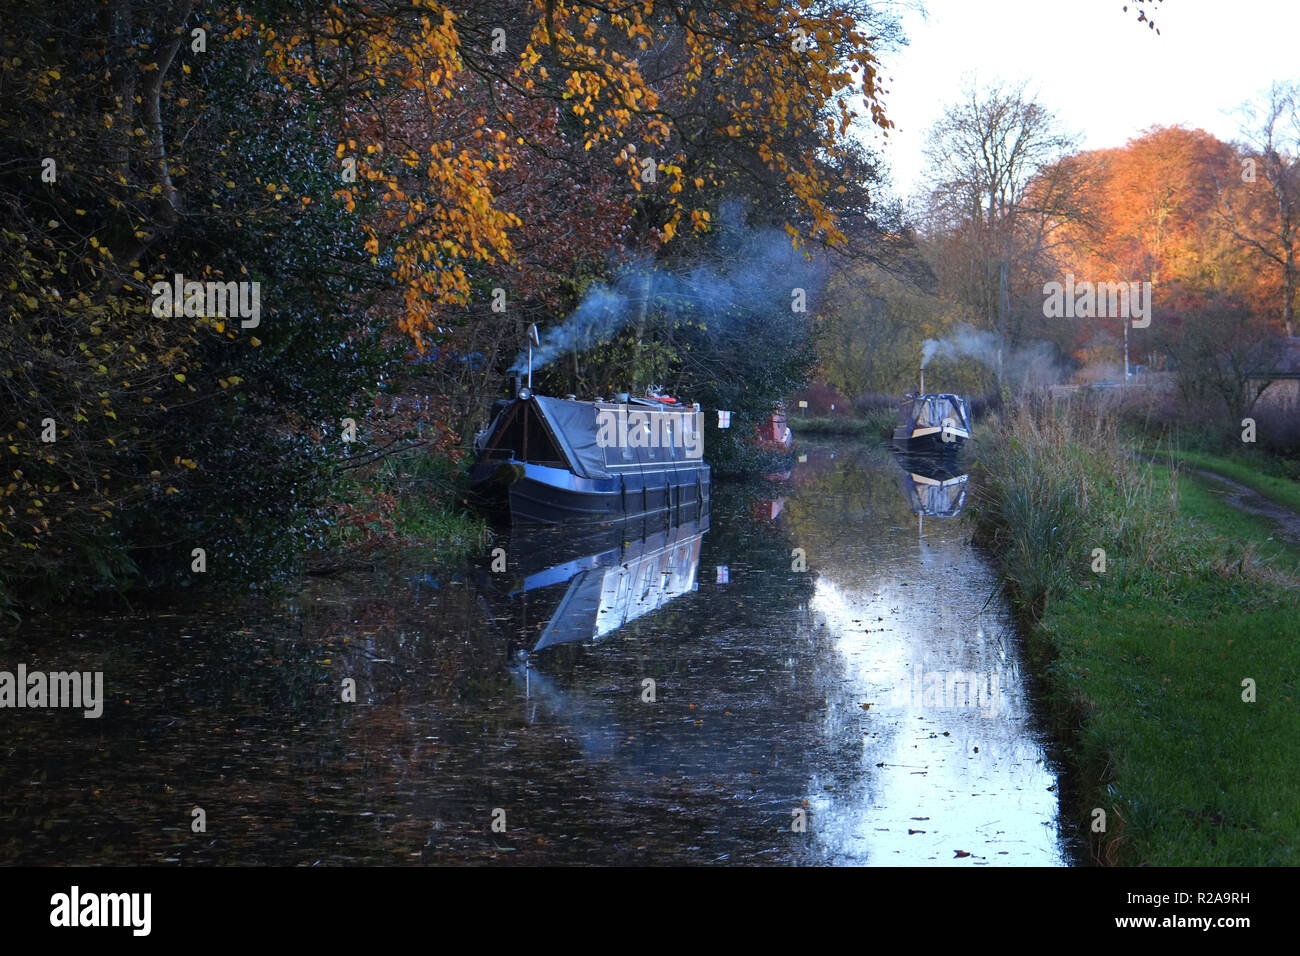 Narrow boats with smoking chimneys moored along the banks of the Caldon Canal at Cheddleton, Staffordshire Moorlands, England. Golden autumn light shines on the trees - Stock Image